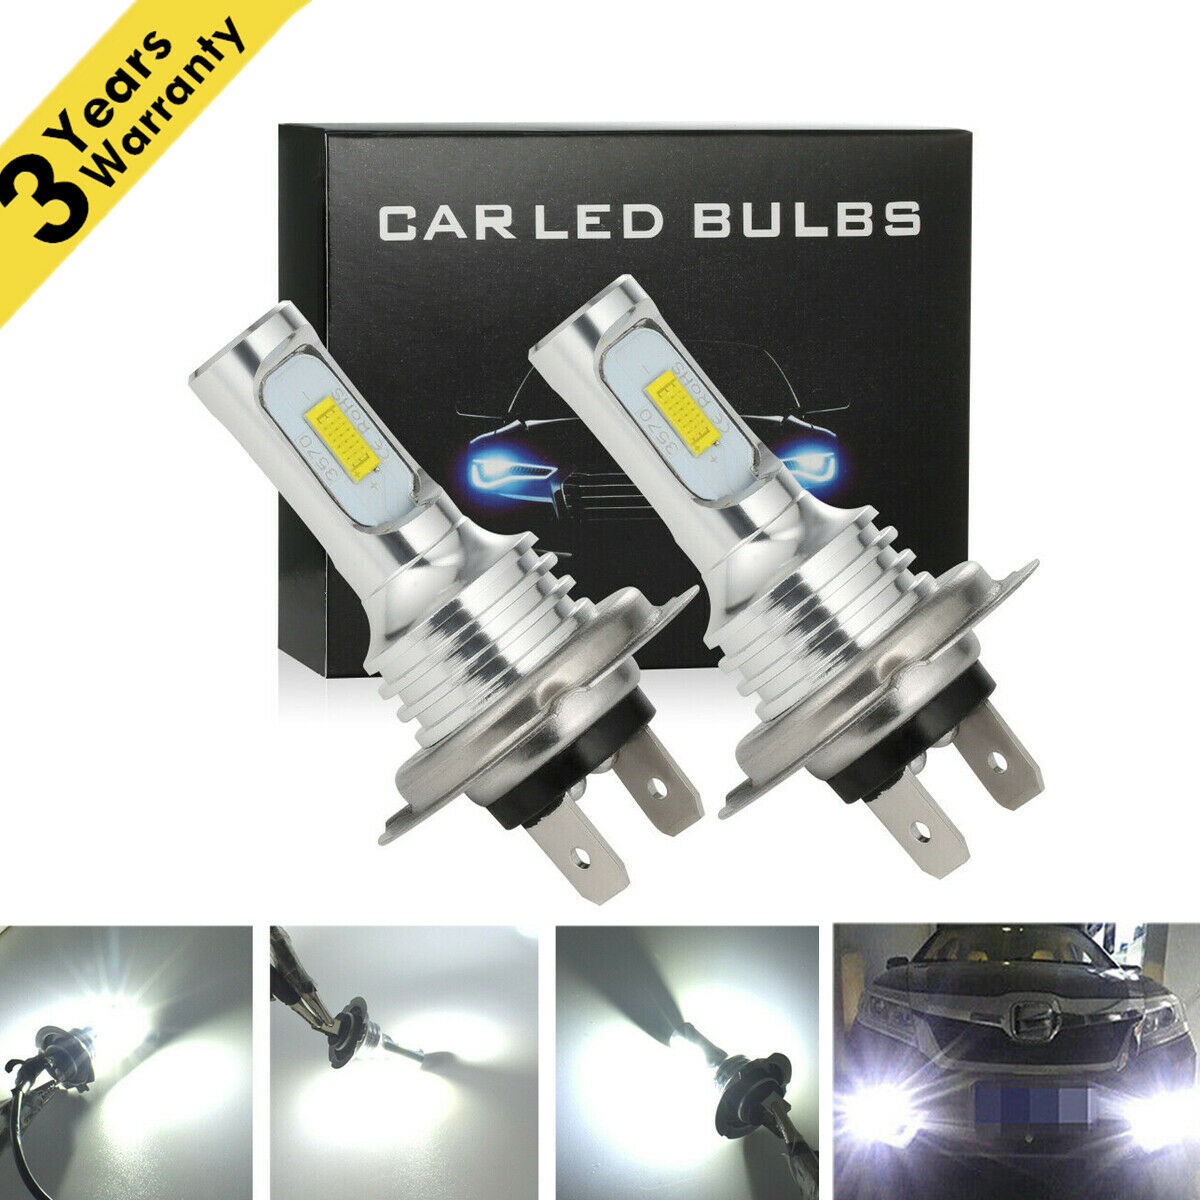 2x 50W 4000LM LED Motorcycle Headlight Conversion Kit 6000K HID White Bulb H7